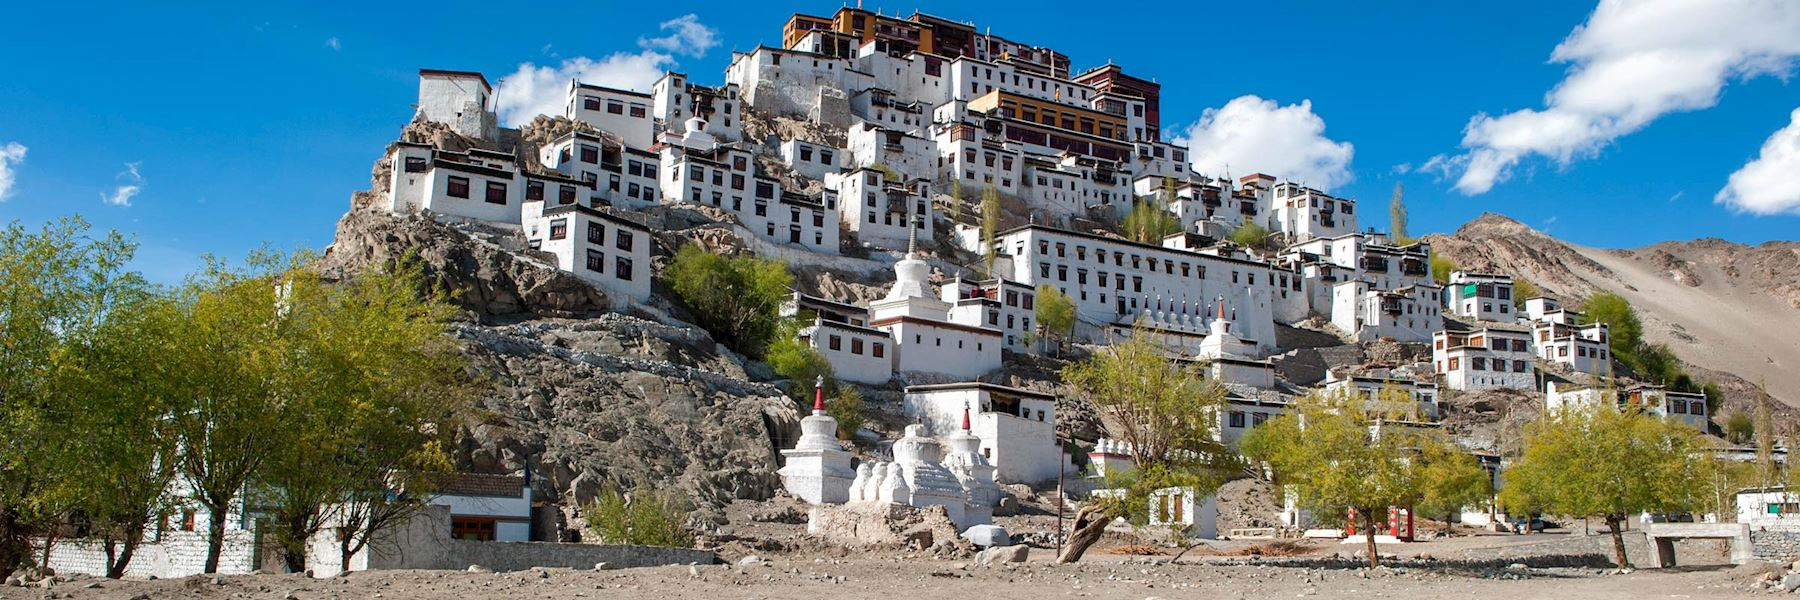 visit leh on a trip to india audley travel